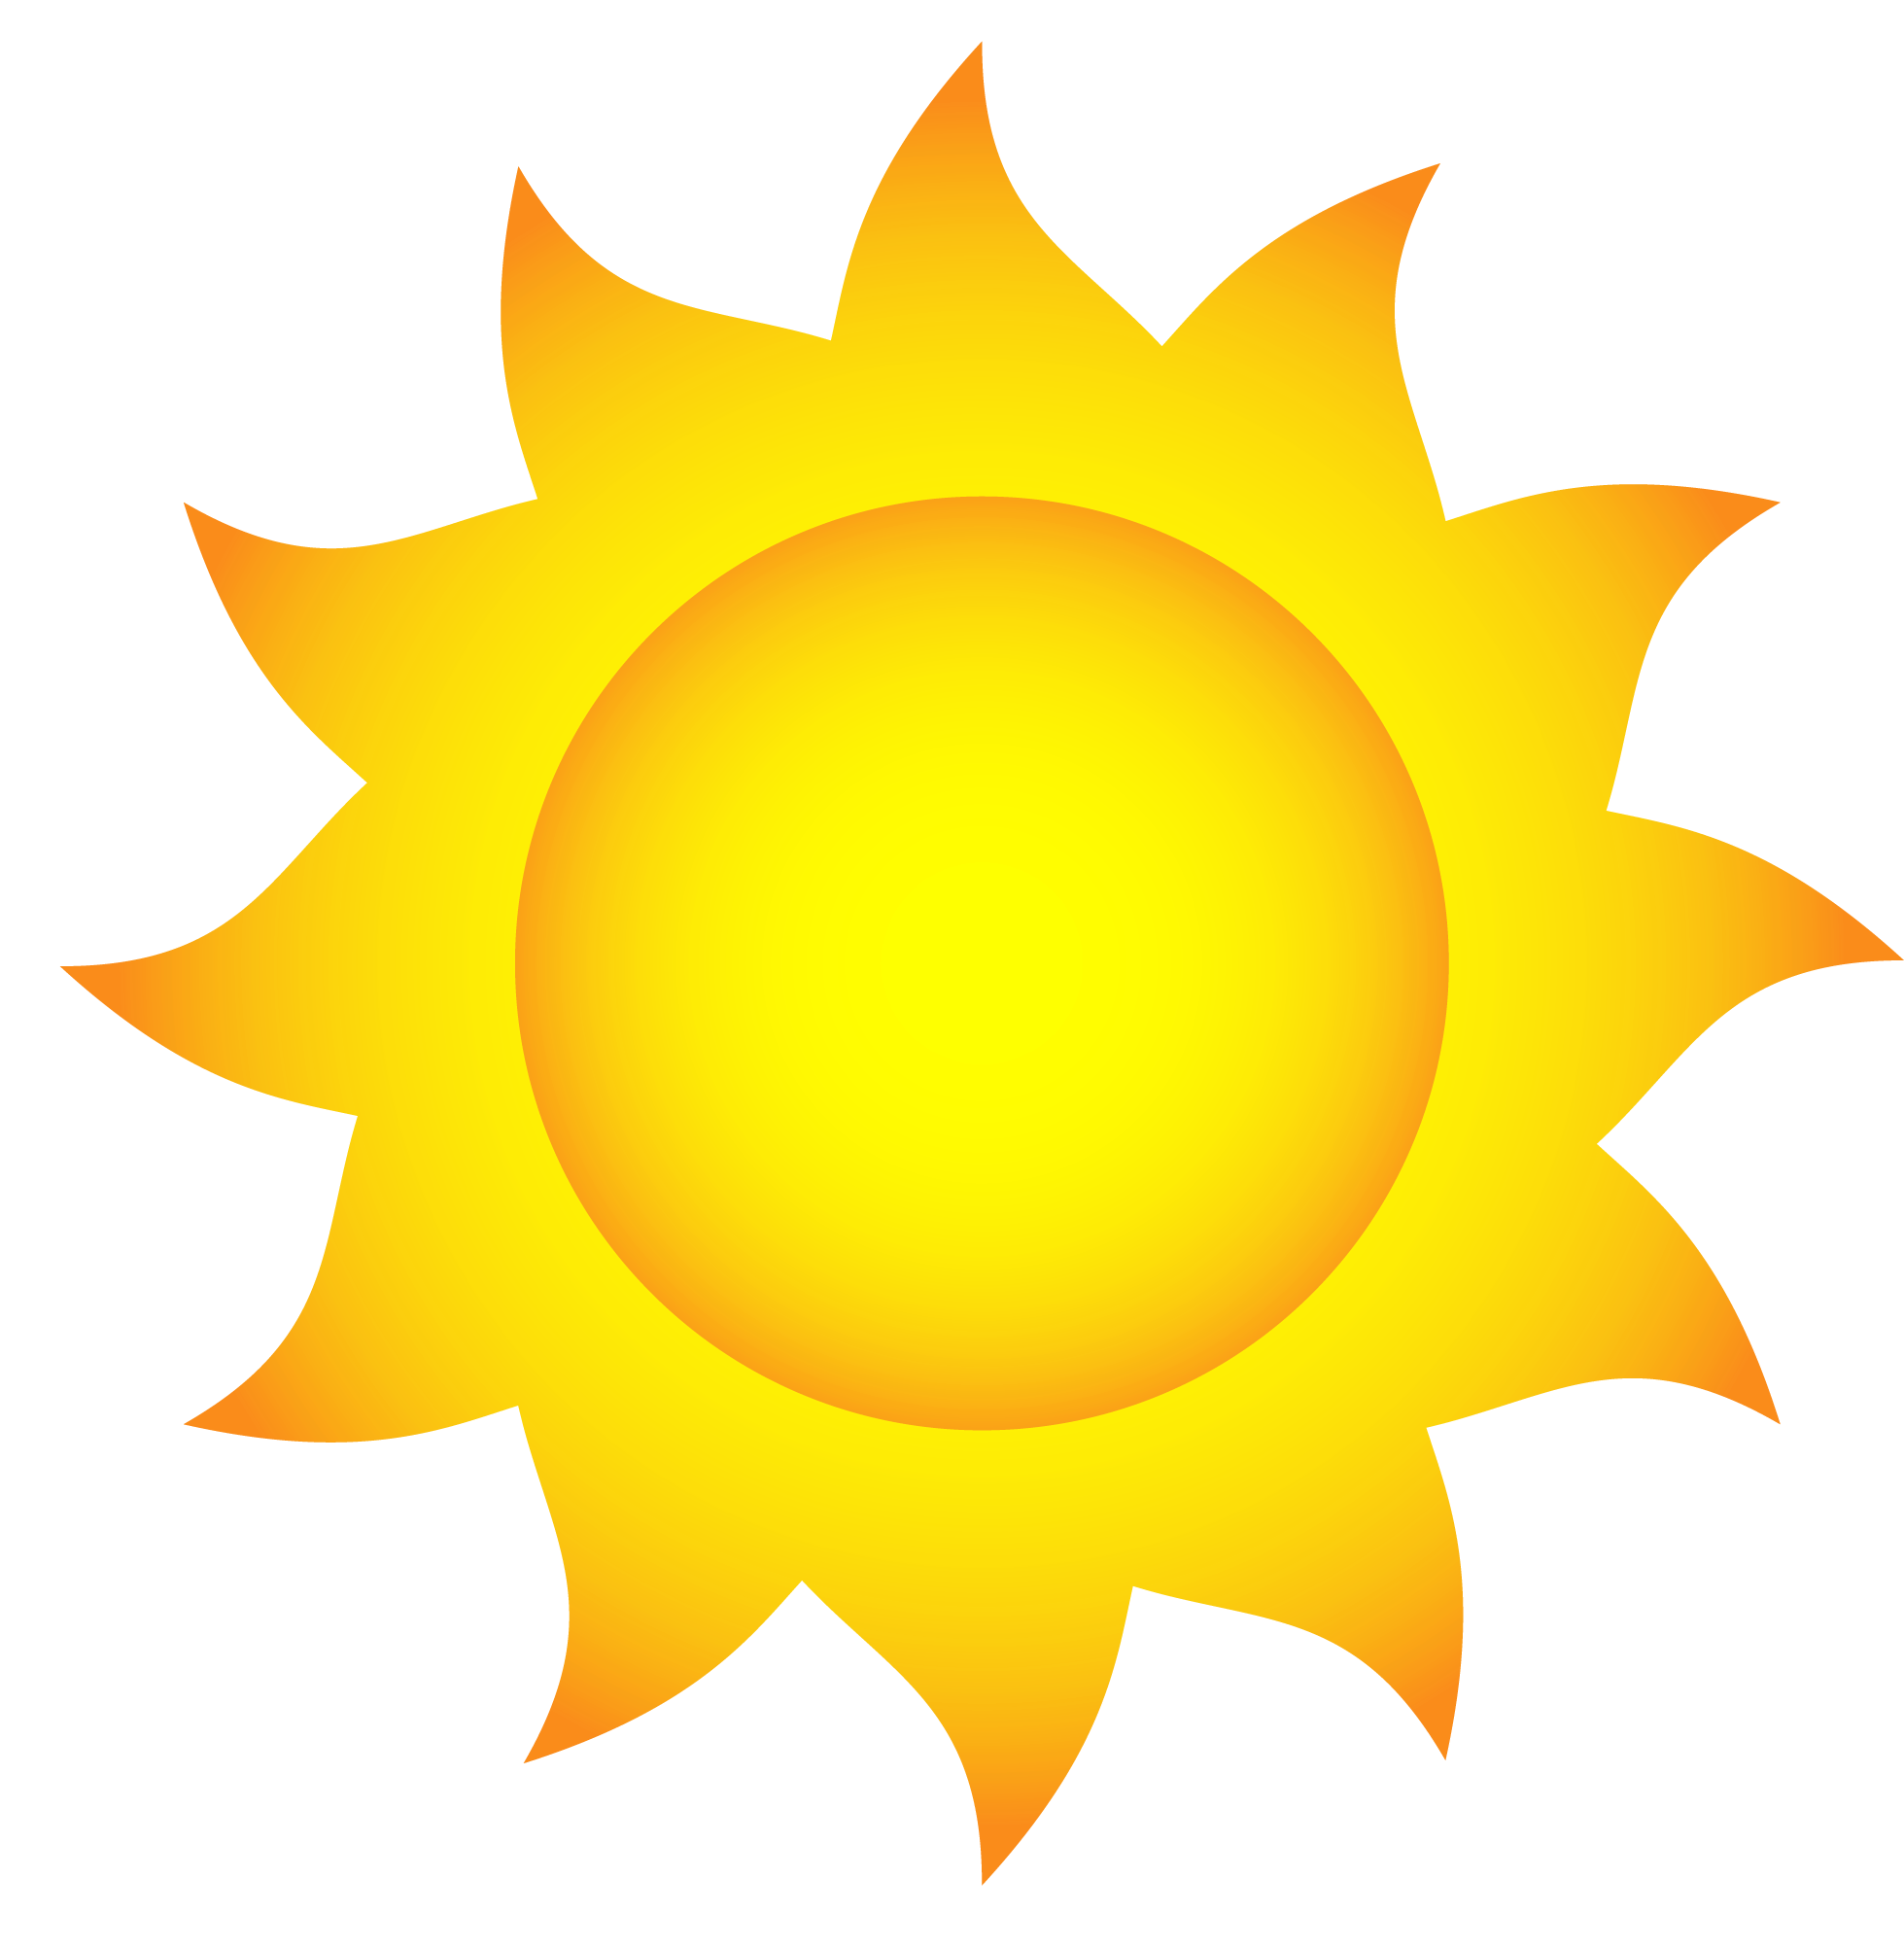 Sunshine free sun clipart public domain clip art images and.